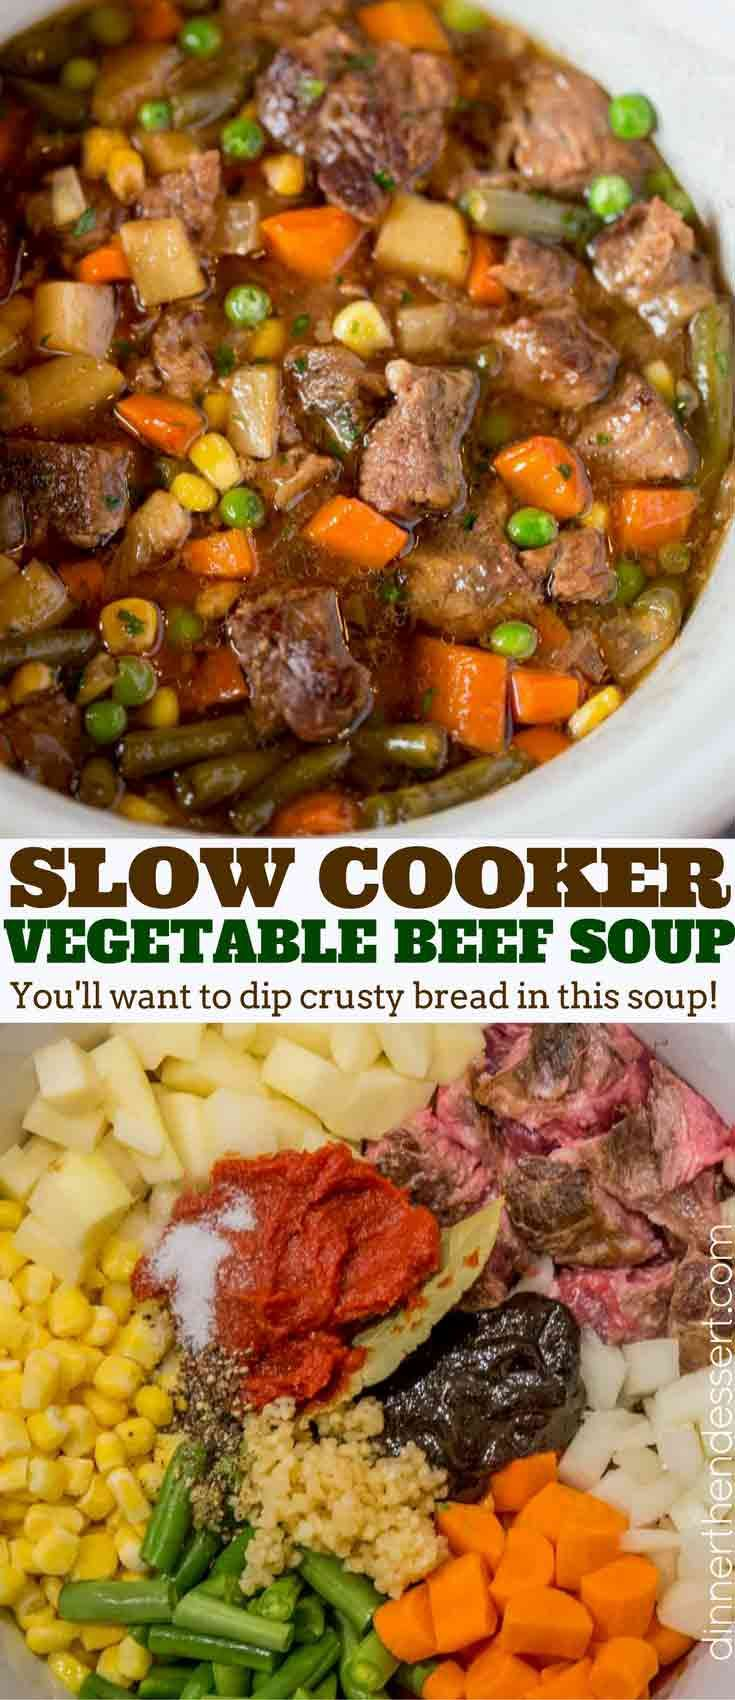 Slow Cooker Vegetable Beef Soup with is the most comforting, EASY soup you'll make. You'll want to dip crusty bread into the amazing flavors in this soup.